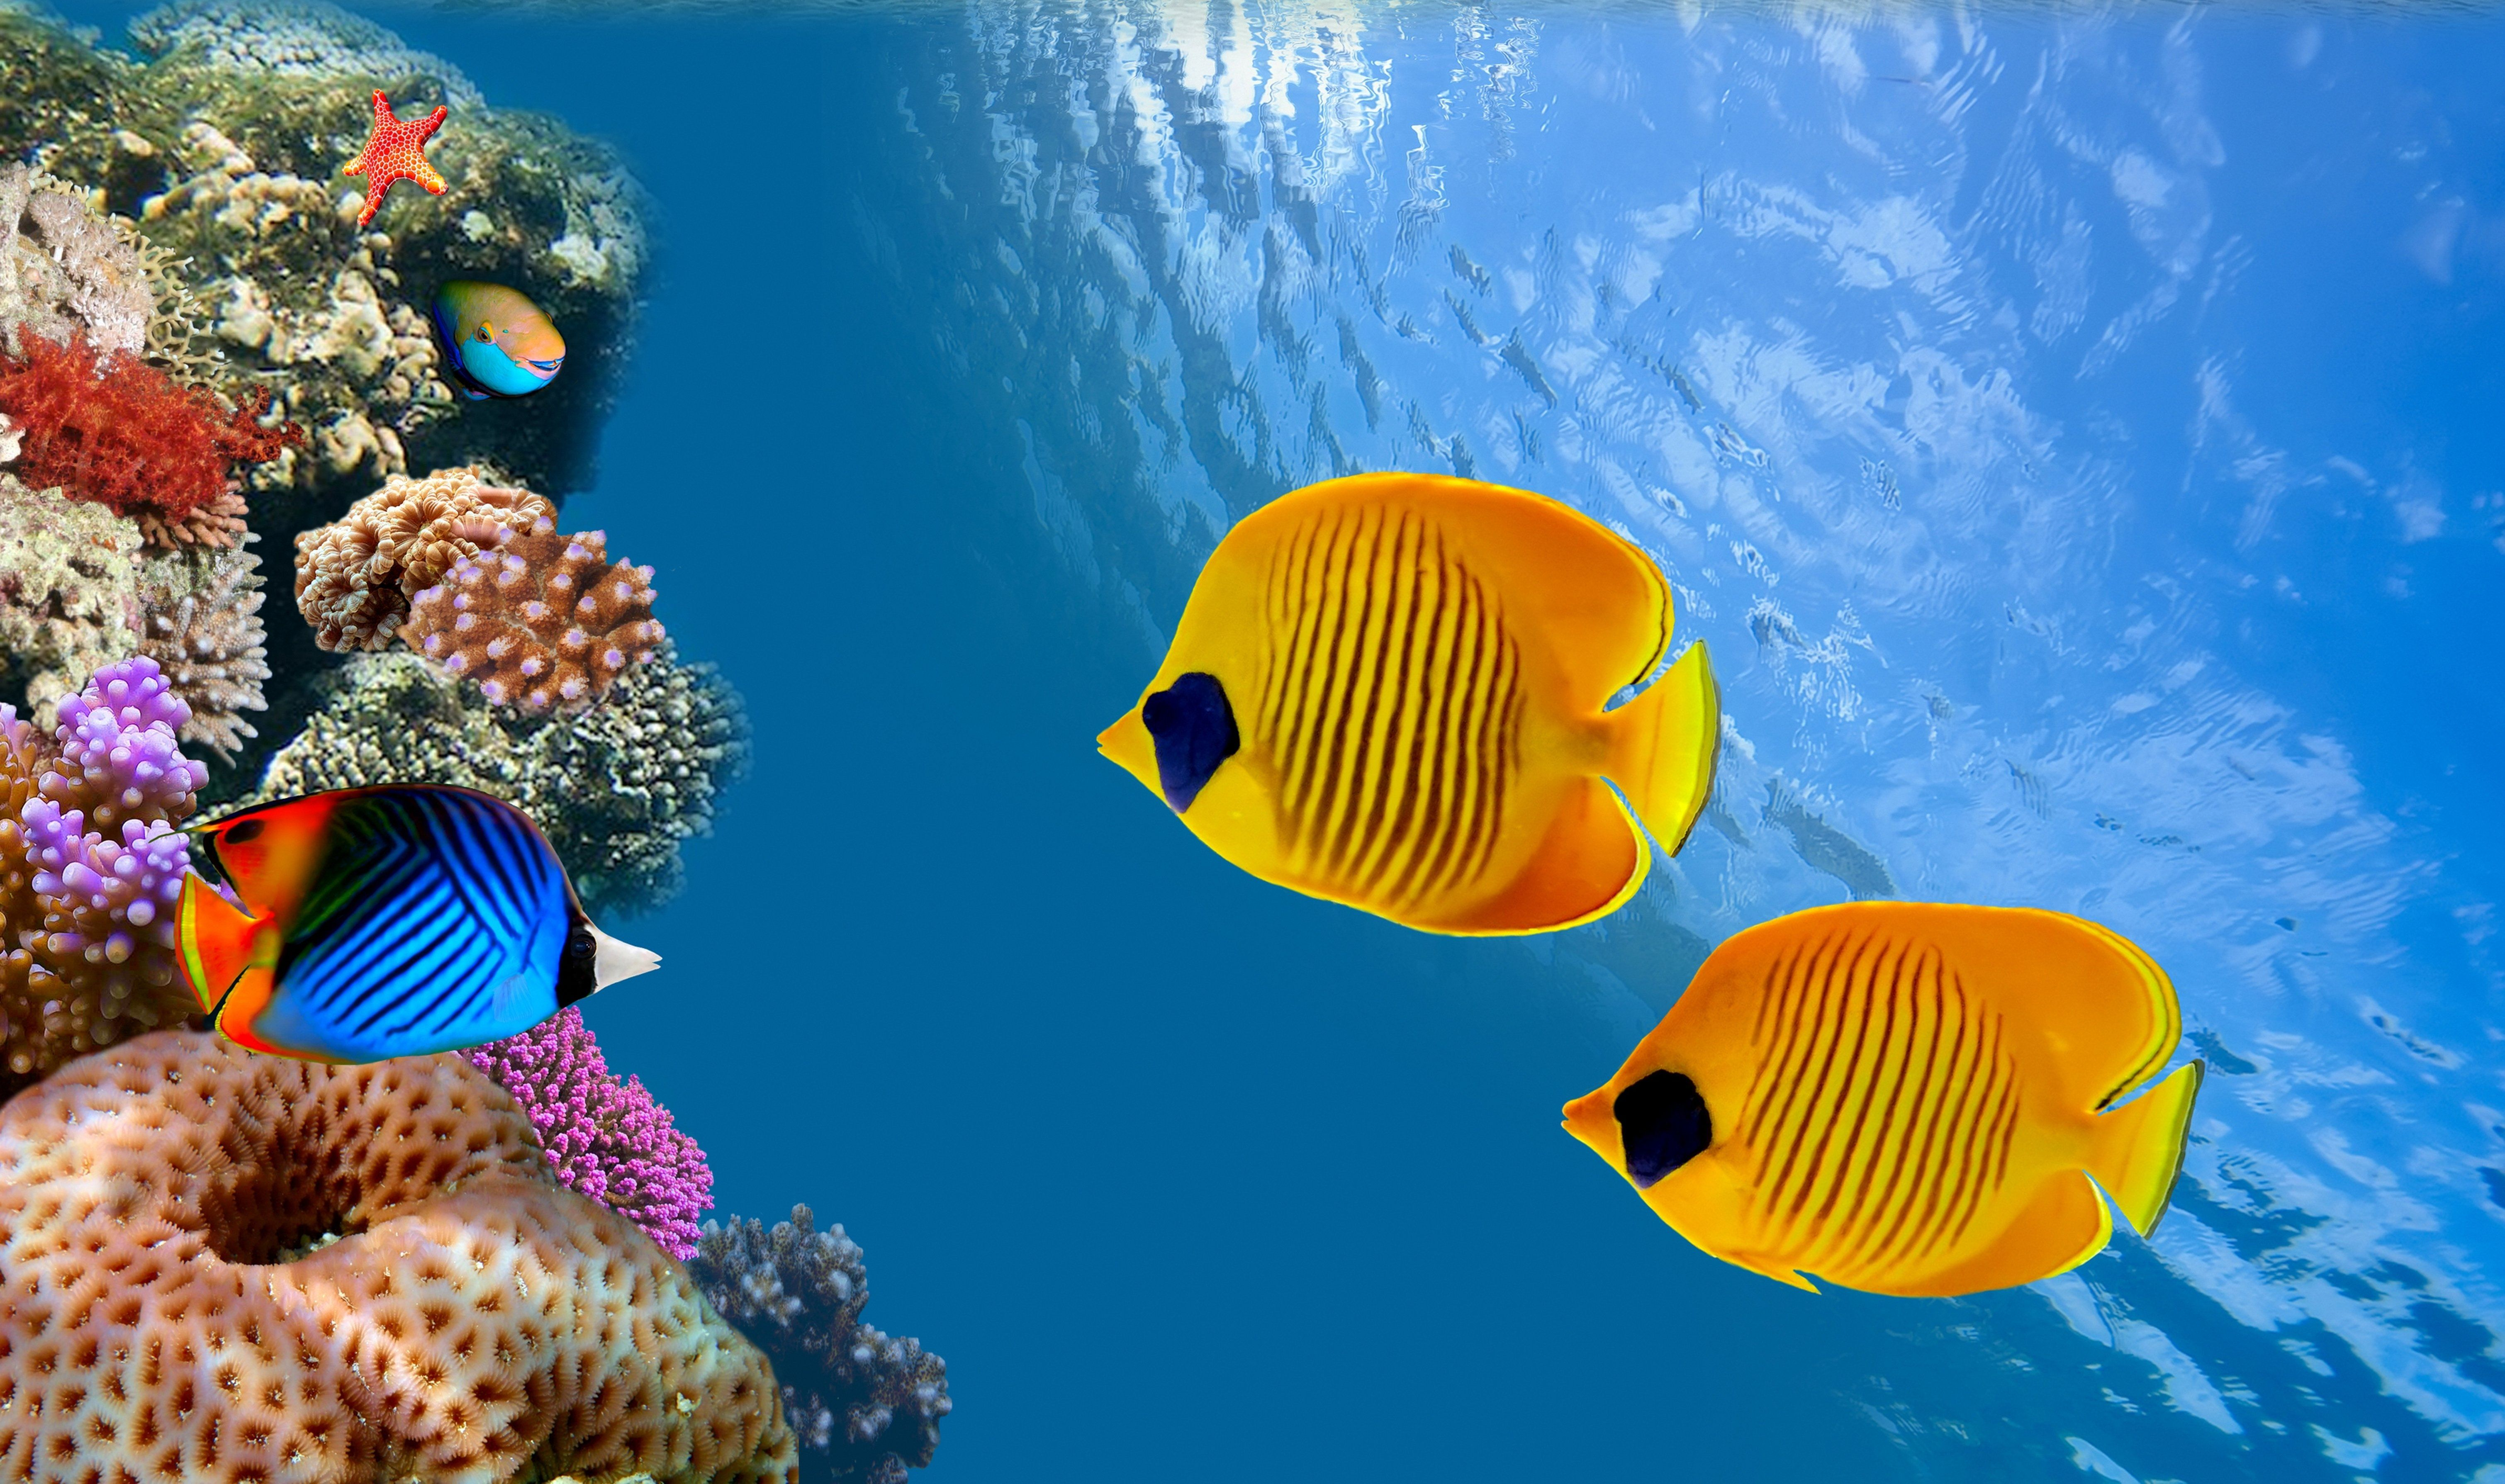 Pin by on pinterest underwater 3d fish underwater world animals wallpaper background publicscrutiny Images